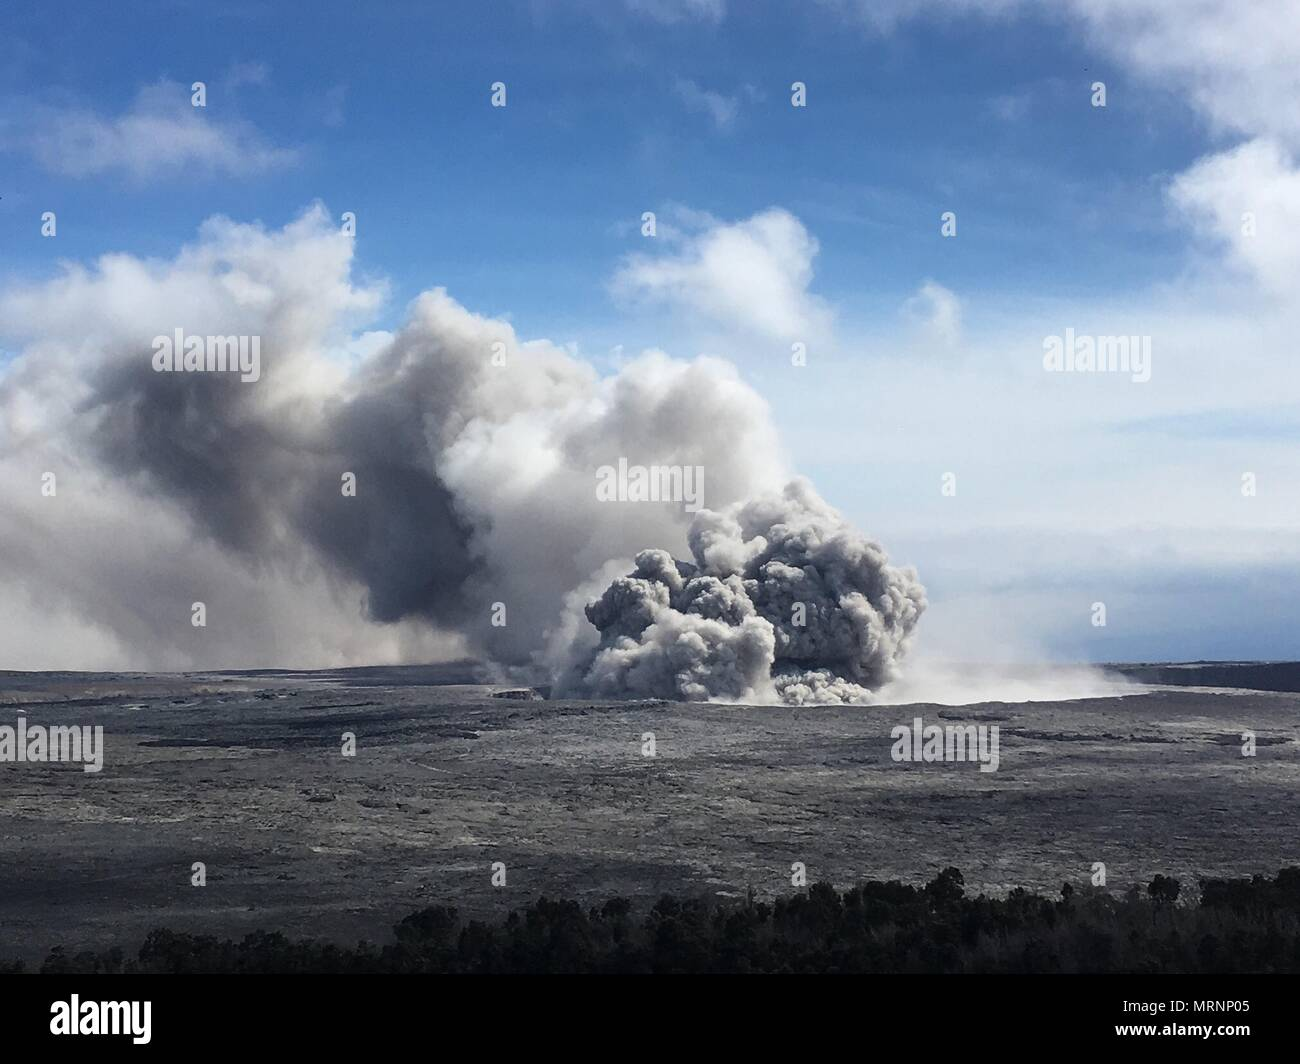 An ash plumes rises from the Halemaumau crater at the summit of the Kilauea volcano May 23, 2018 in Pahoa, Hawaii. Stock Photo